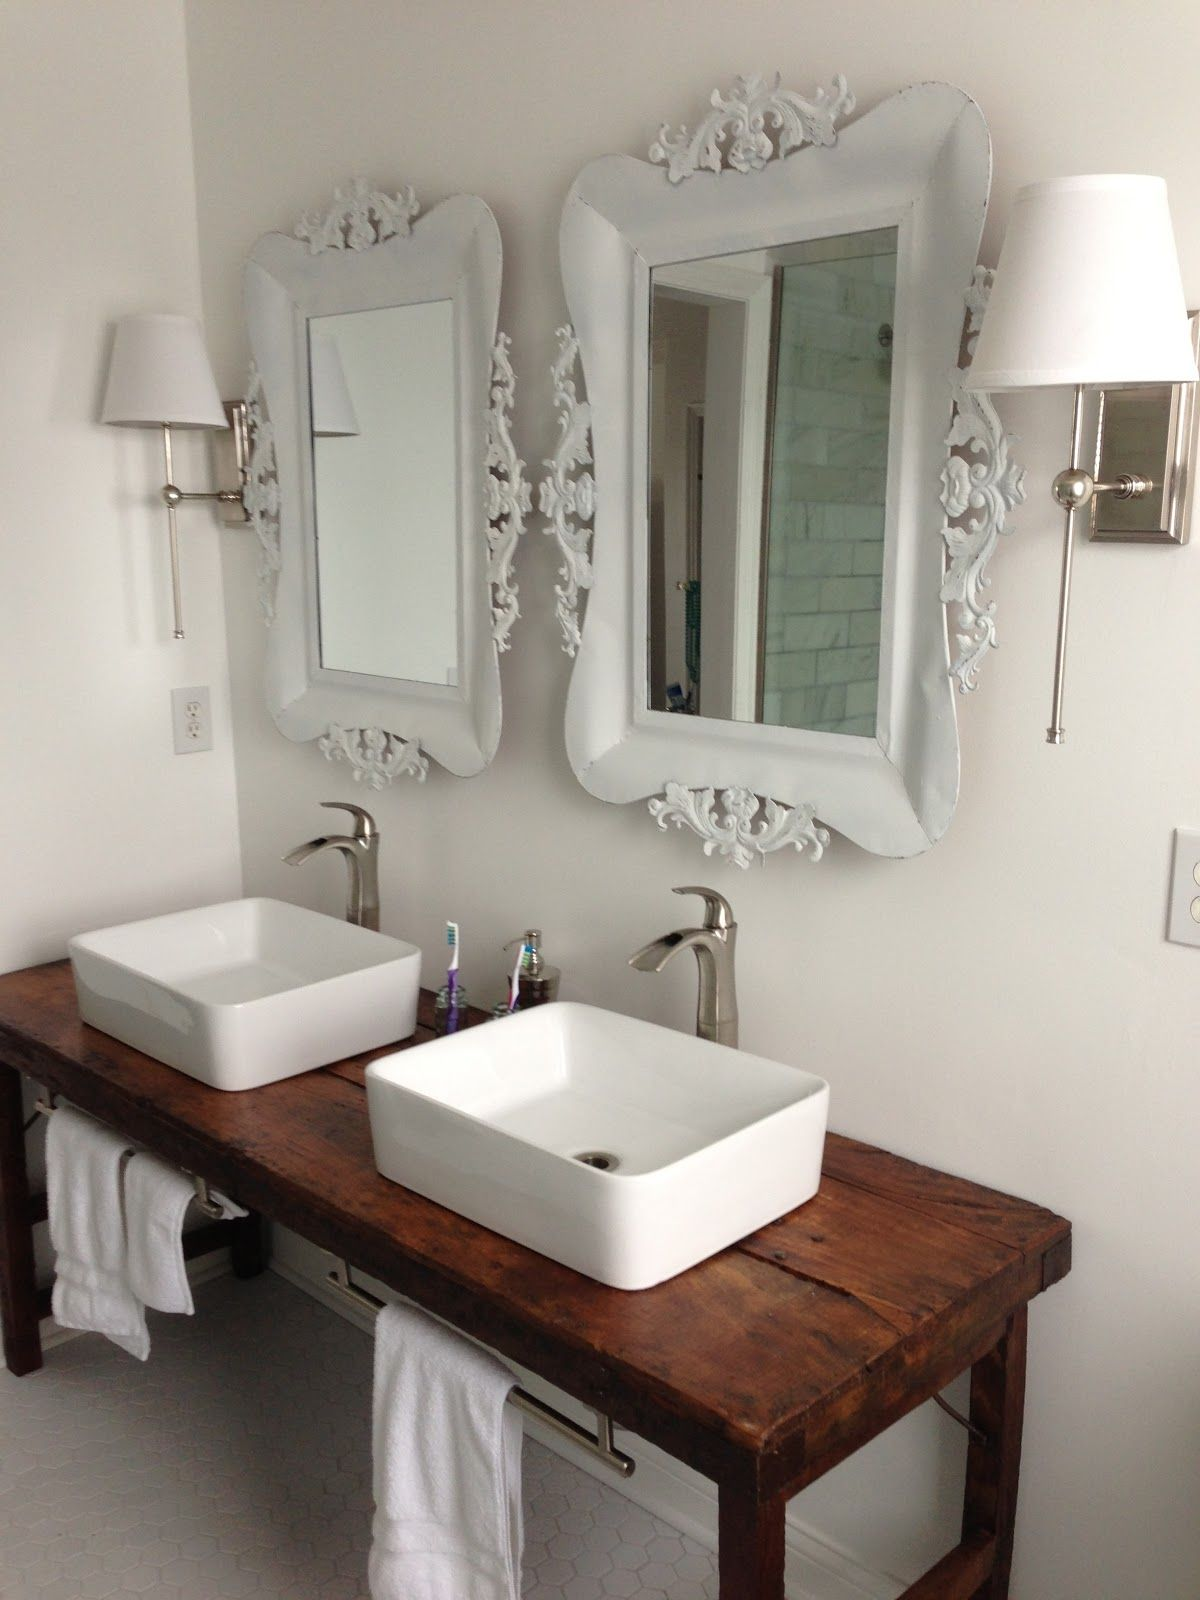 design decor and remodel projects master bath remodel bathroom rh pinterest com